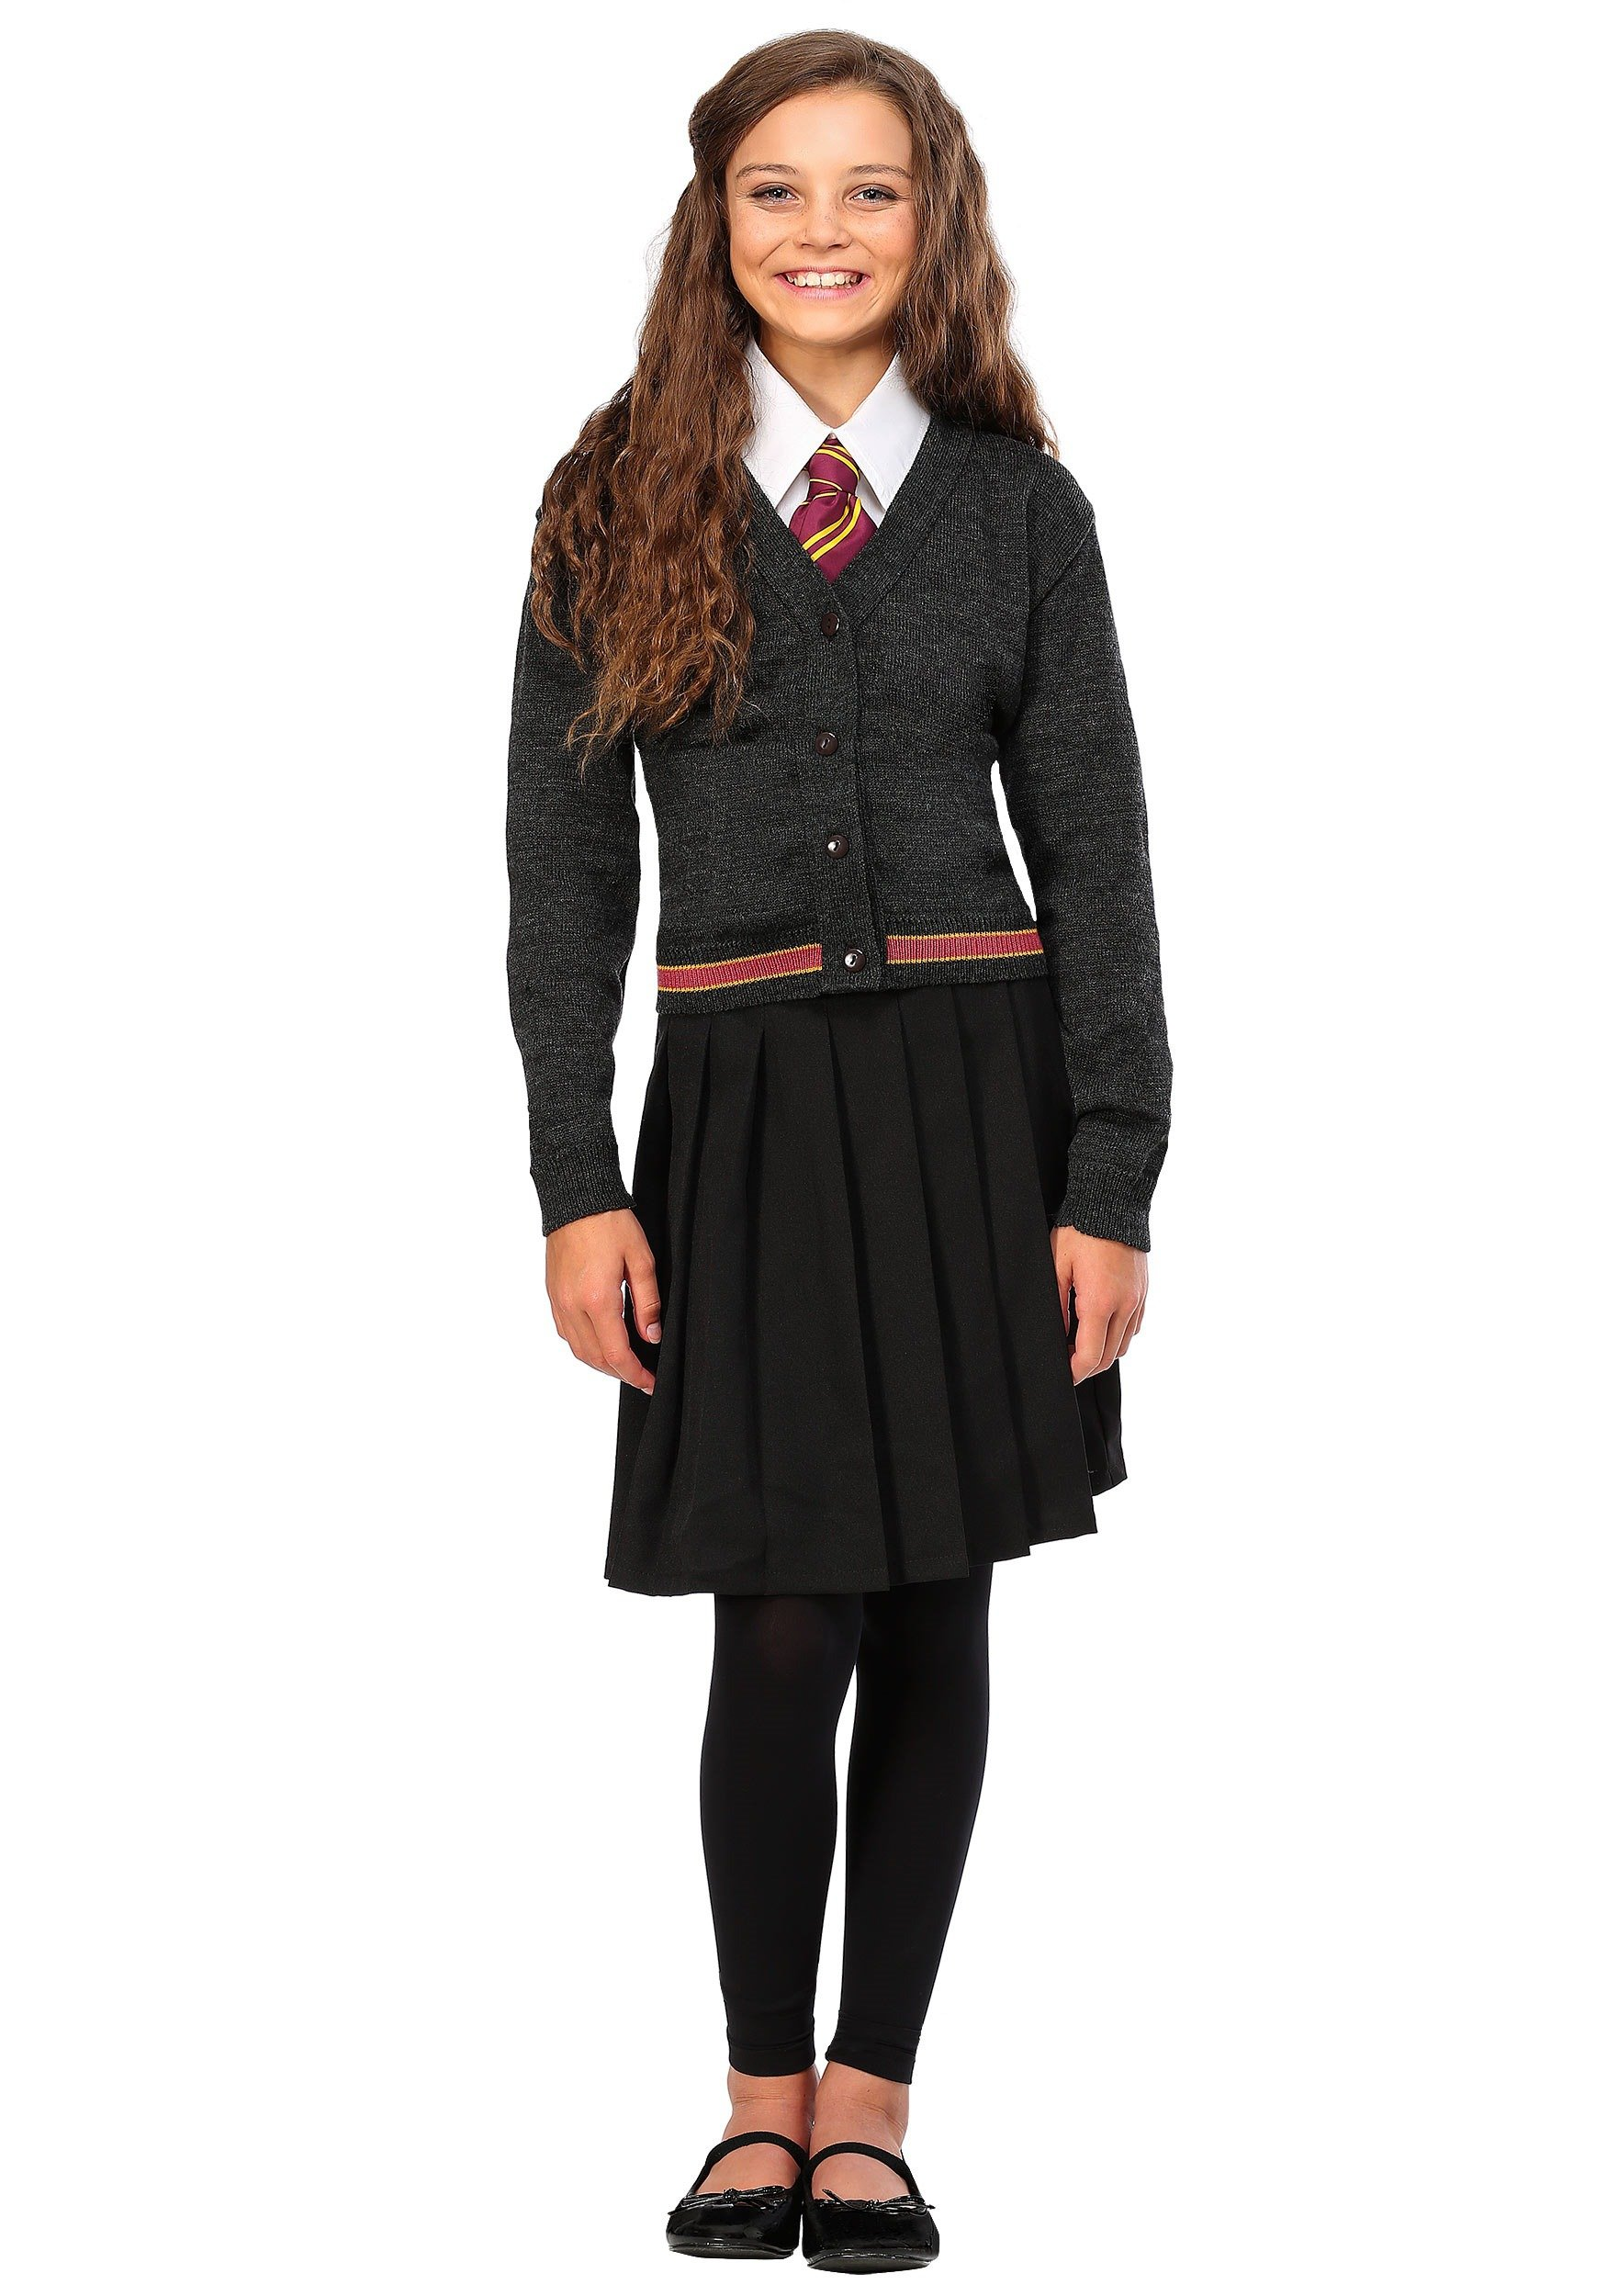 Girls Deluxe Hermione Granger Uniform and Robe Costume - XS by Charades (Image #5)